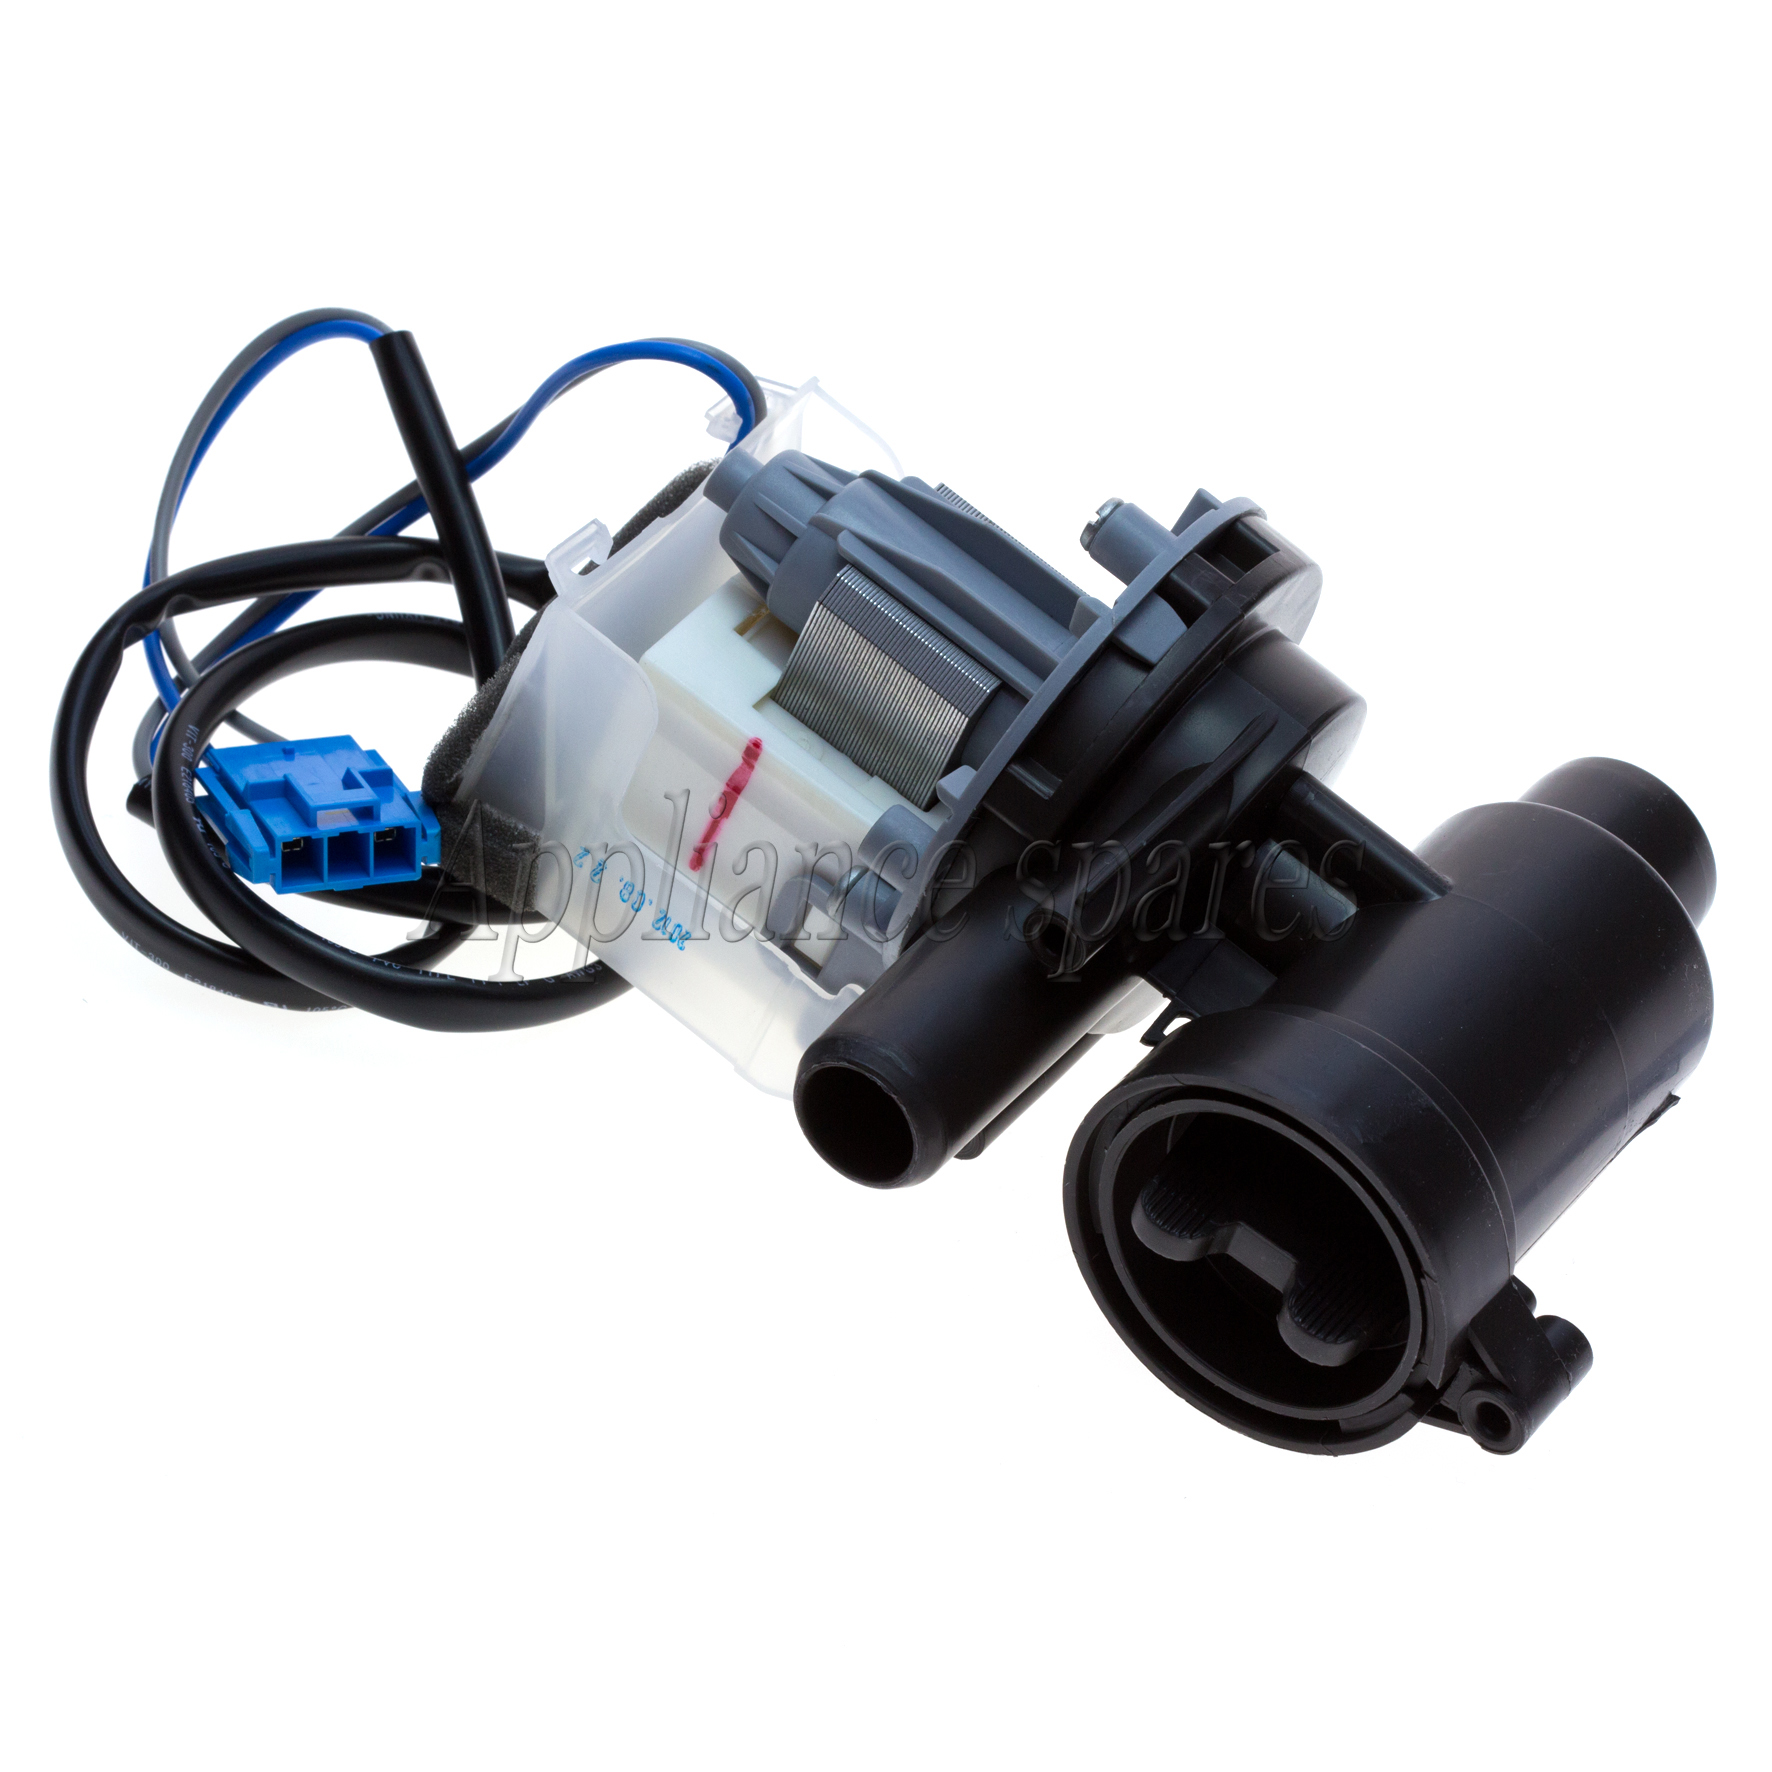 Lg Top Loader Washing Machine Drain Pump